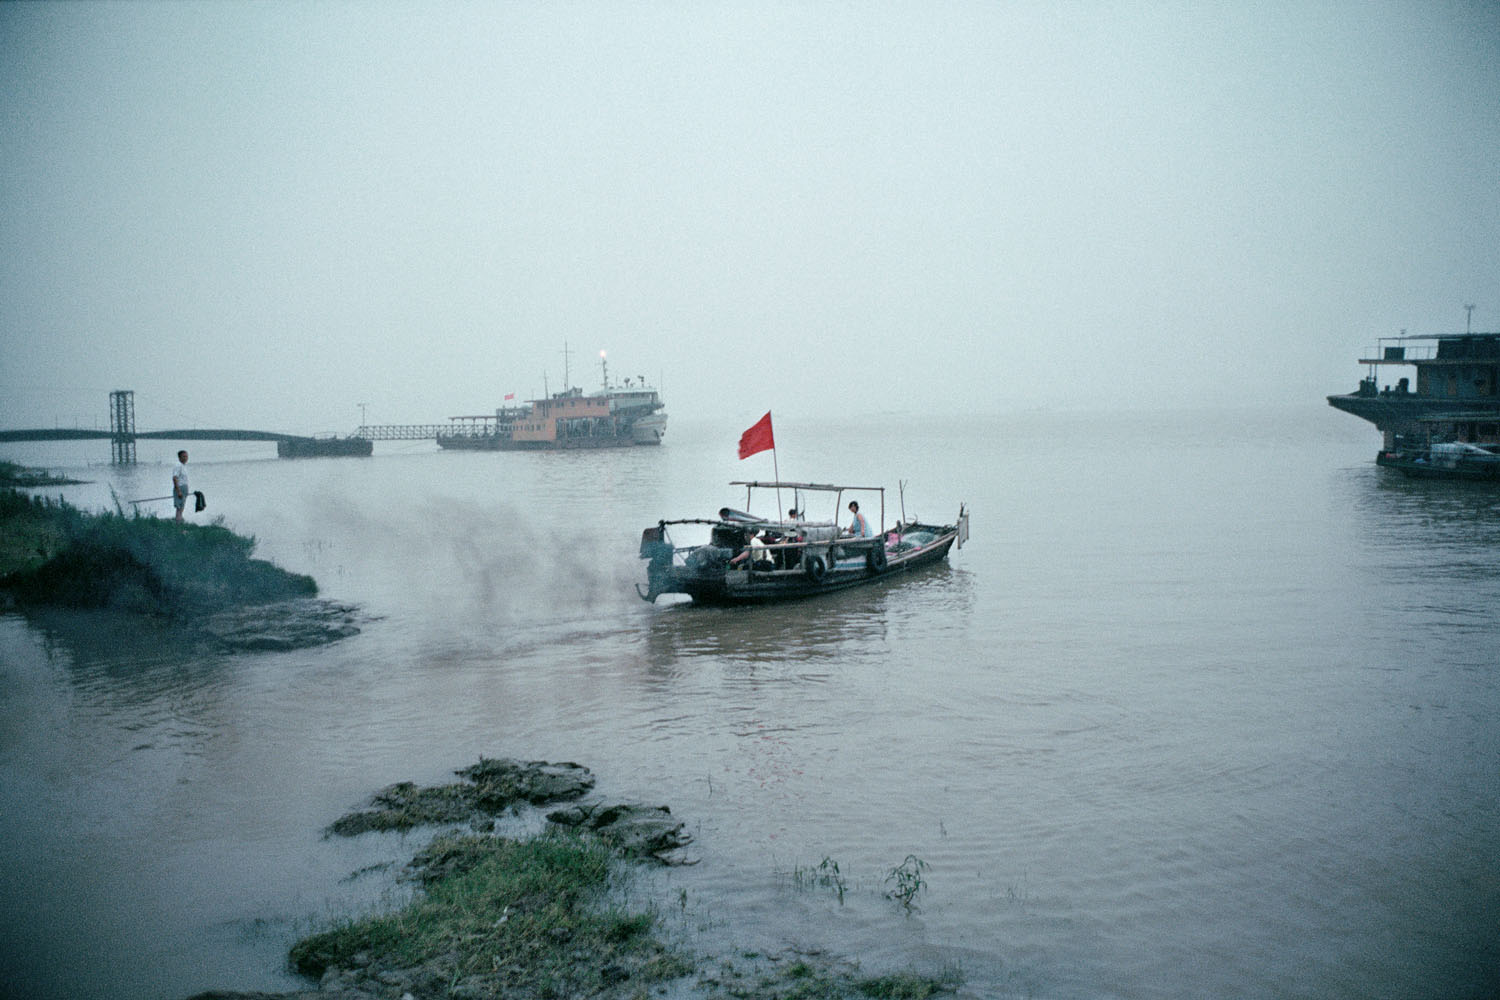 Daily life on the Yangtze River. A boat with a red flag sails away into the distance on a foggy day. China. 2001.